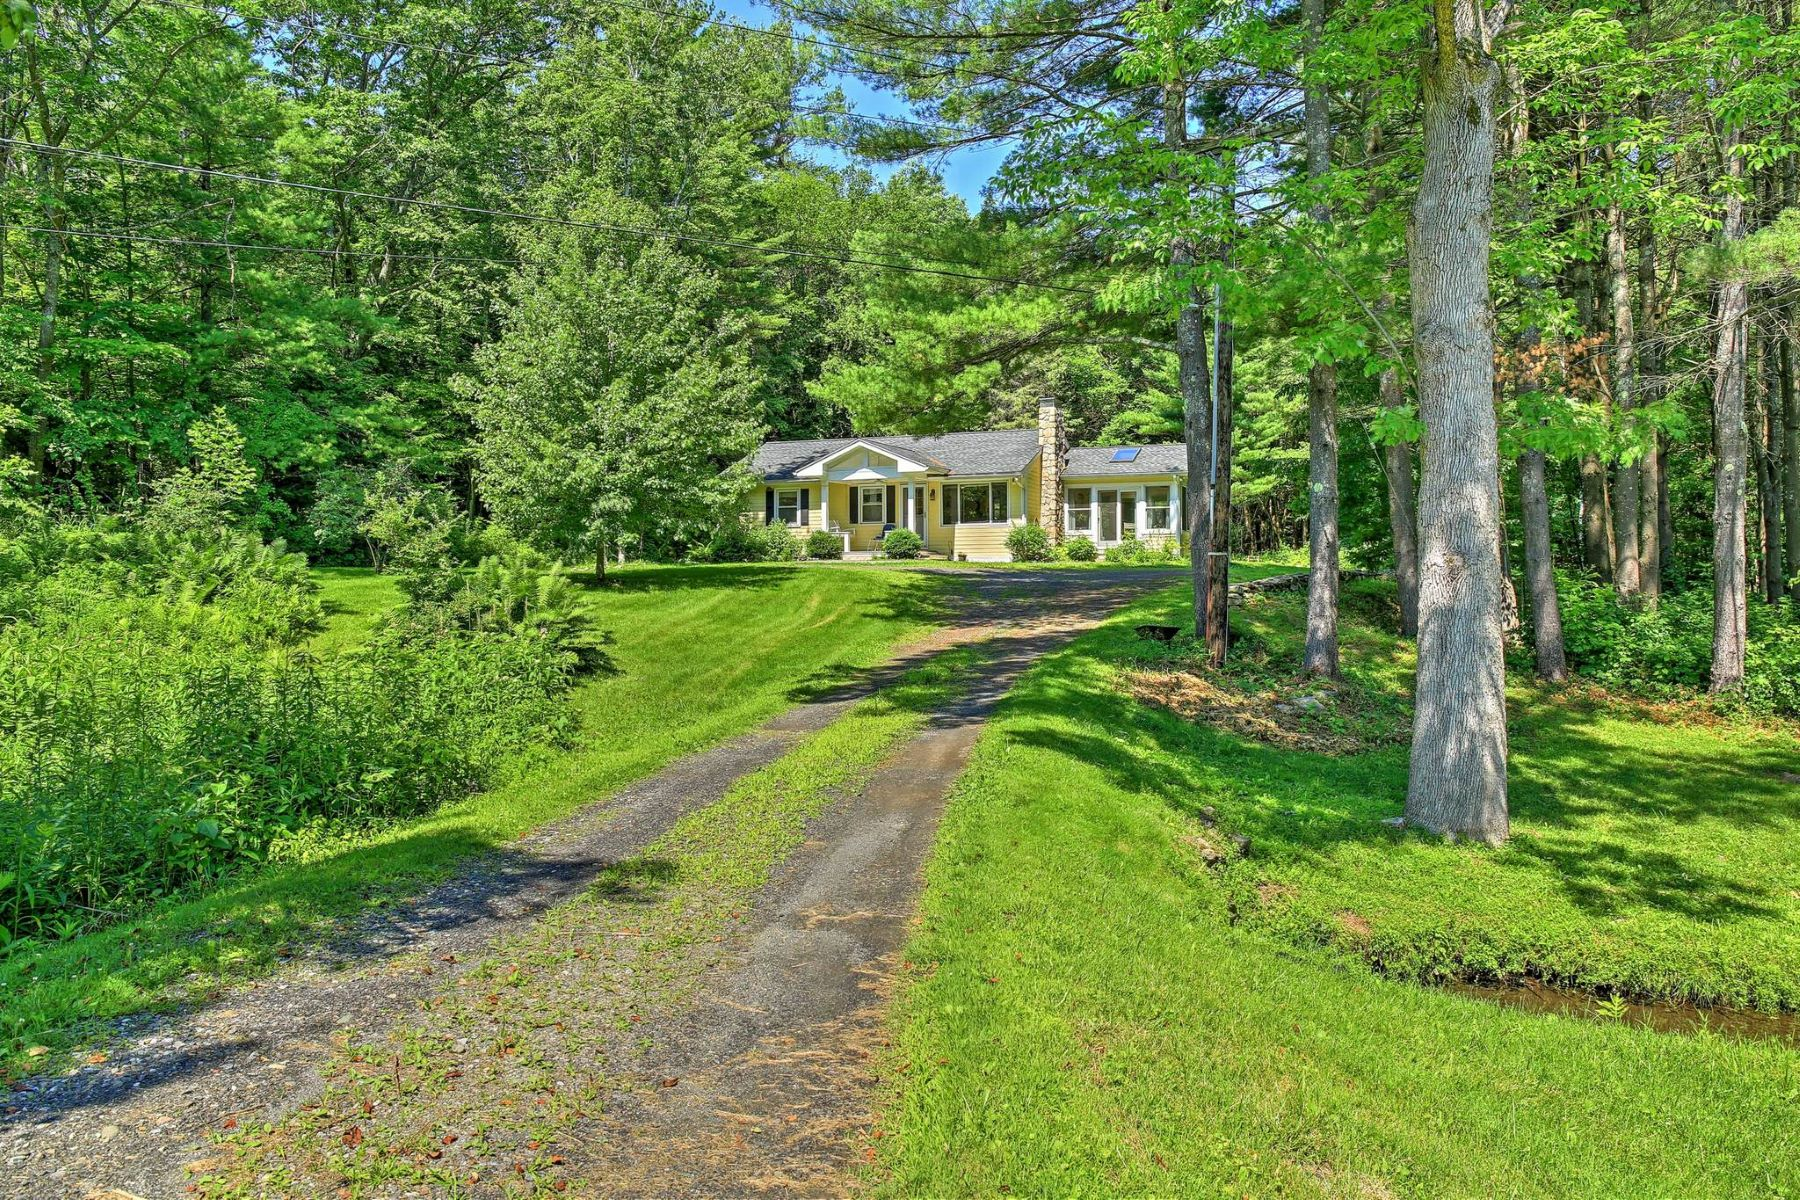 Single Family Home for Active at Perfect Private Country Retreat 108 East Alford Rd West Stockbridge, Massachusetts 01266 United States